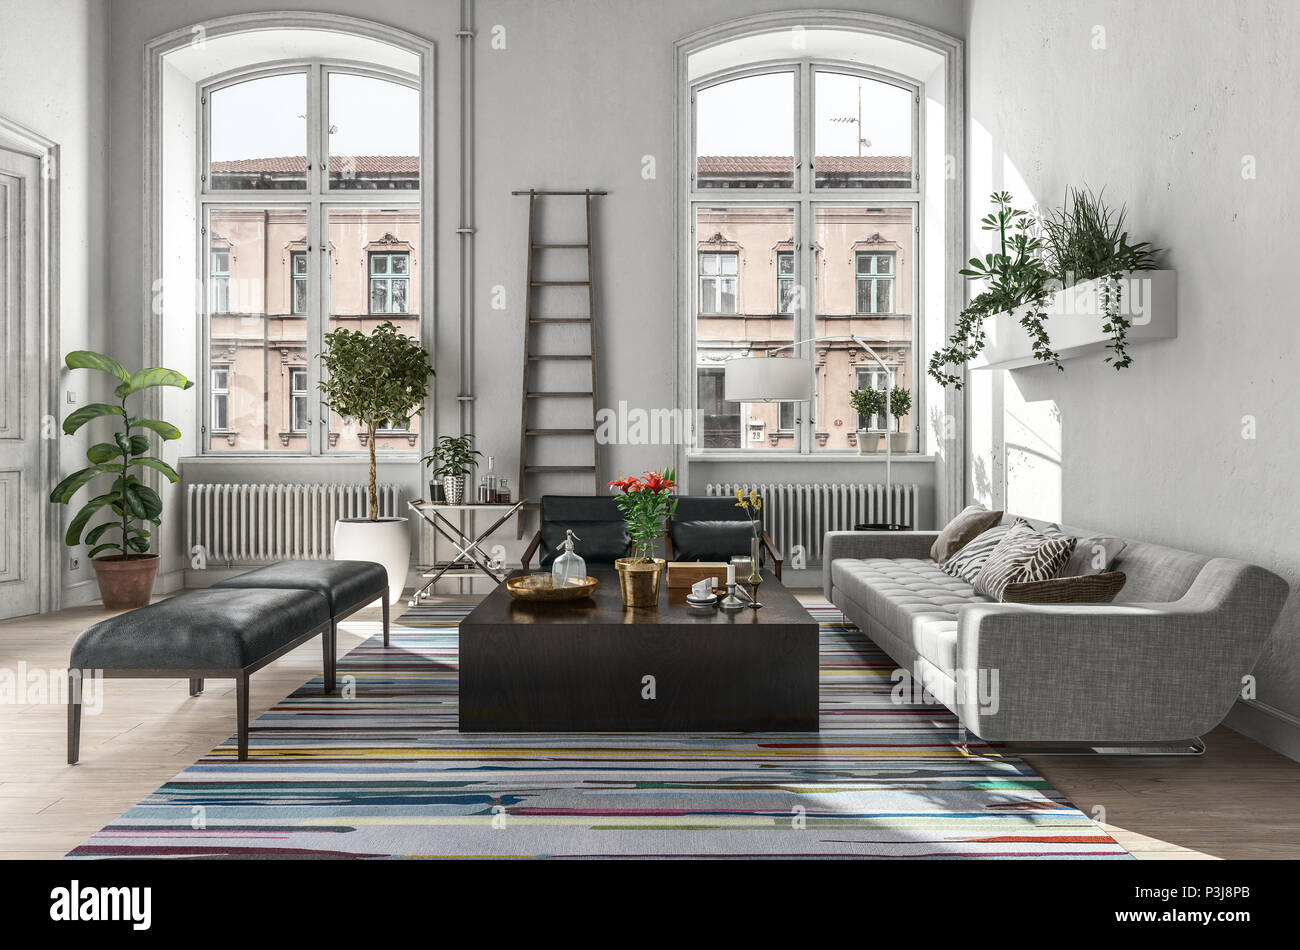 Modern rustic living room interior in a scandinavian style 3d rendering